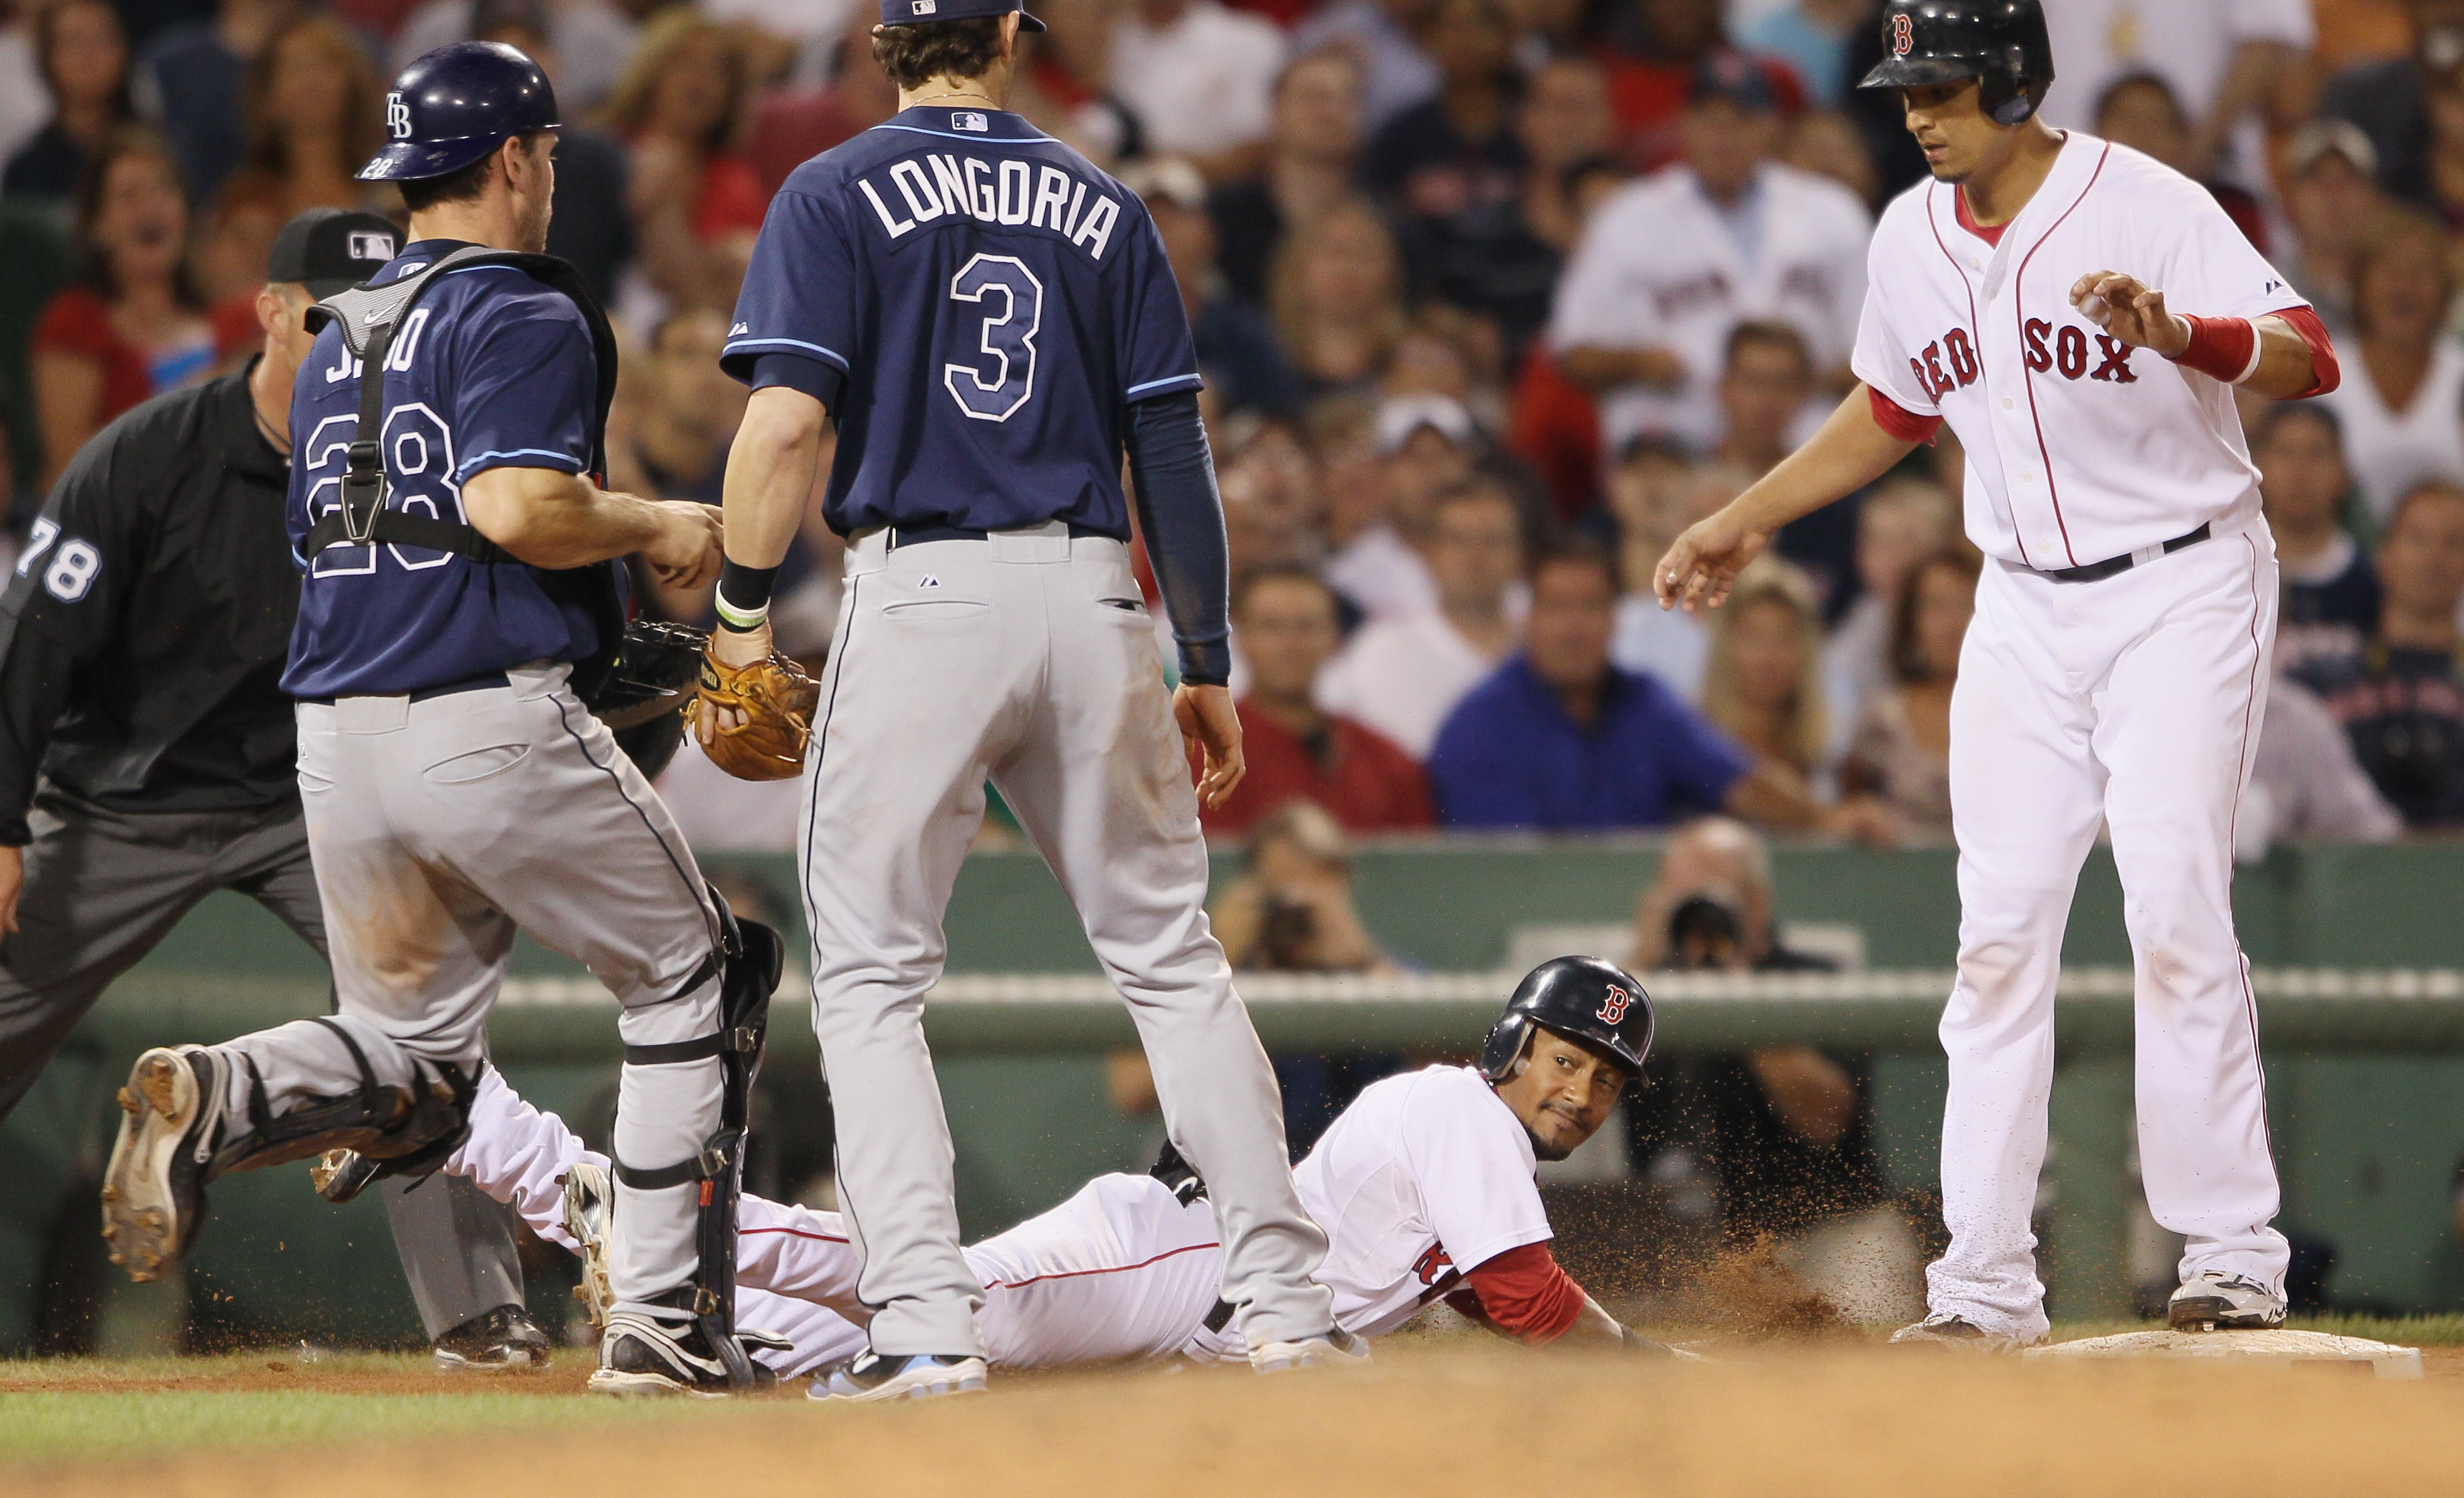 BOSTON - SEPTEMBER 08:  Eric Patterson #3 of the Boston Red Sox slides safely back to third as Evan Longoria #3 and John Jaso #28 of the Tampa Bay Rays chase him on September 8, 2010 at Fenway Park in Boston, Massachusetts. Patterson thought he was called